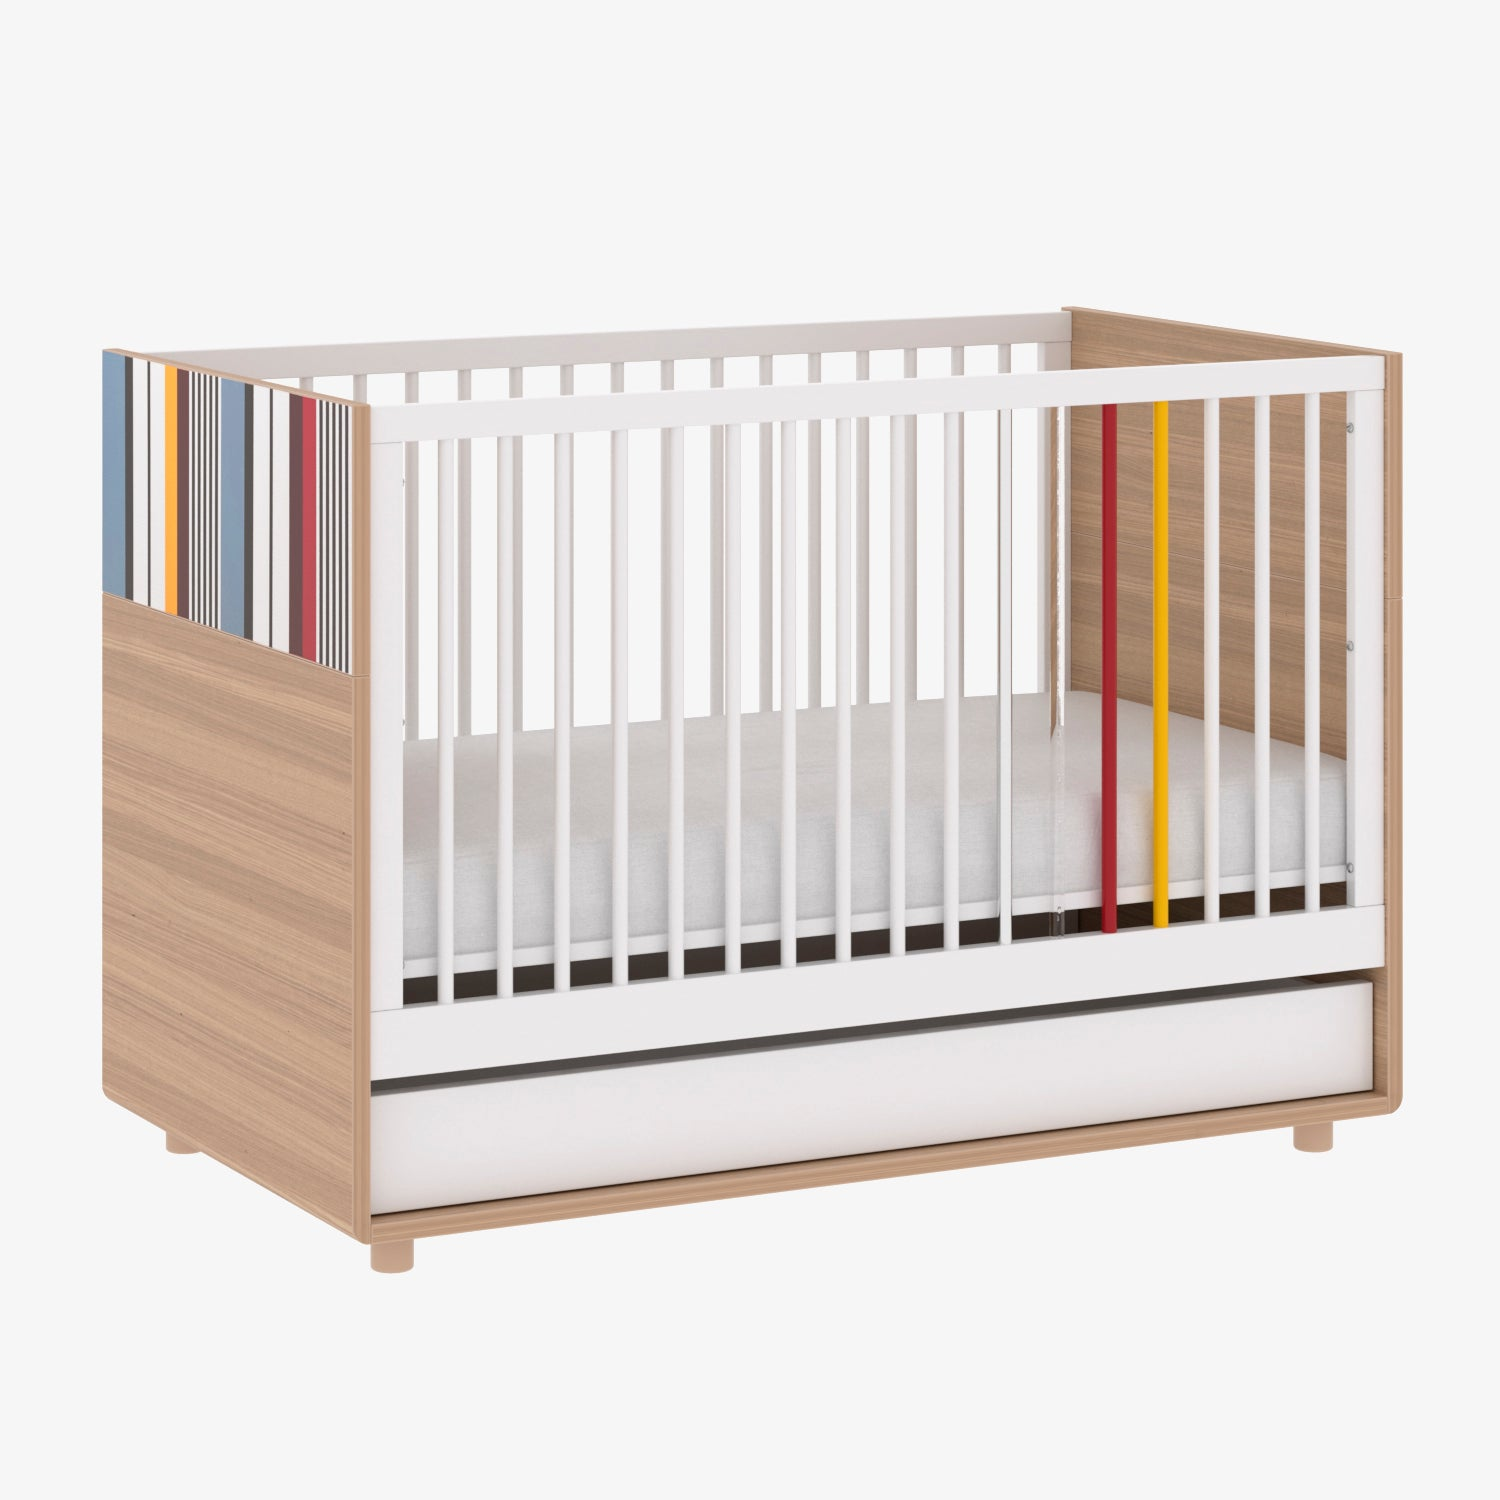 Evolve Convertible 3-in-1 Crib/Youth Bed